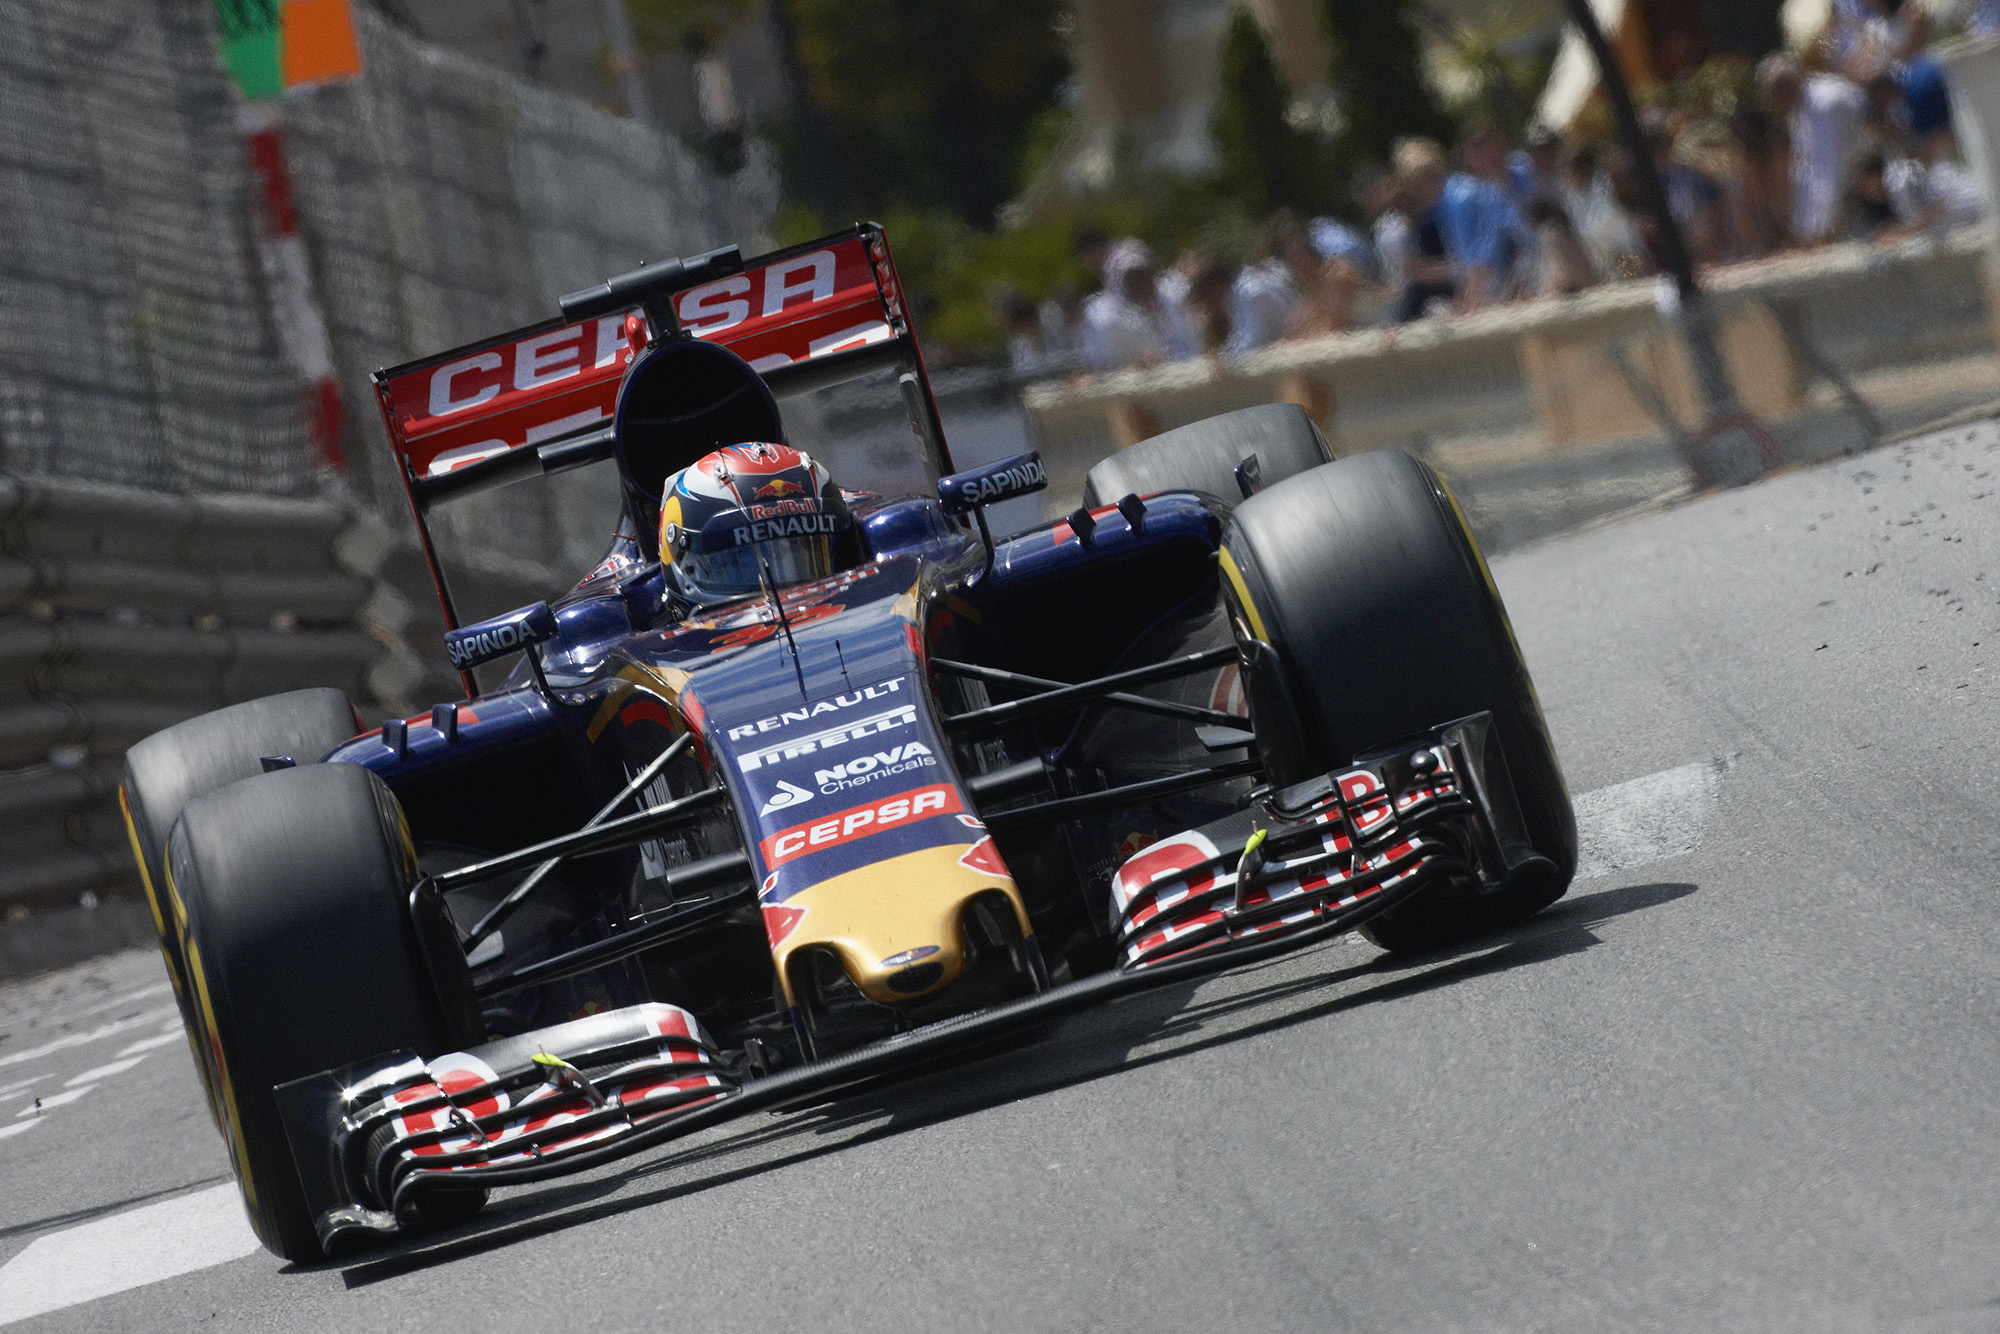 Max Verstappen behind the wheel of his Toro Rosso in 2015